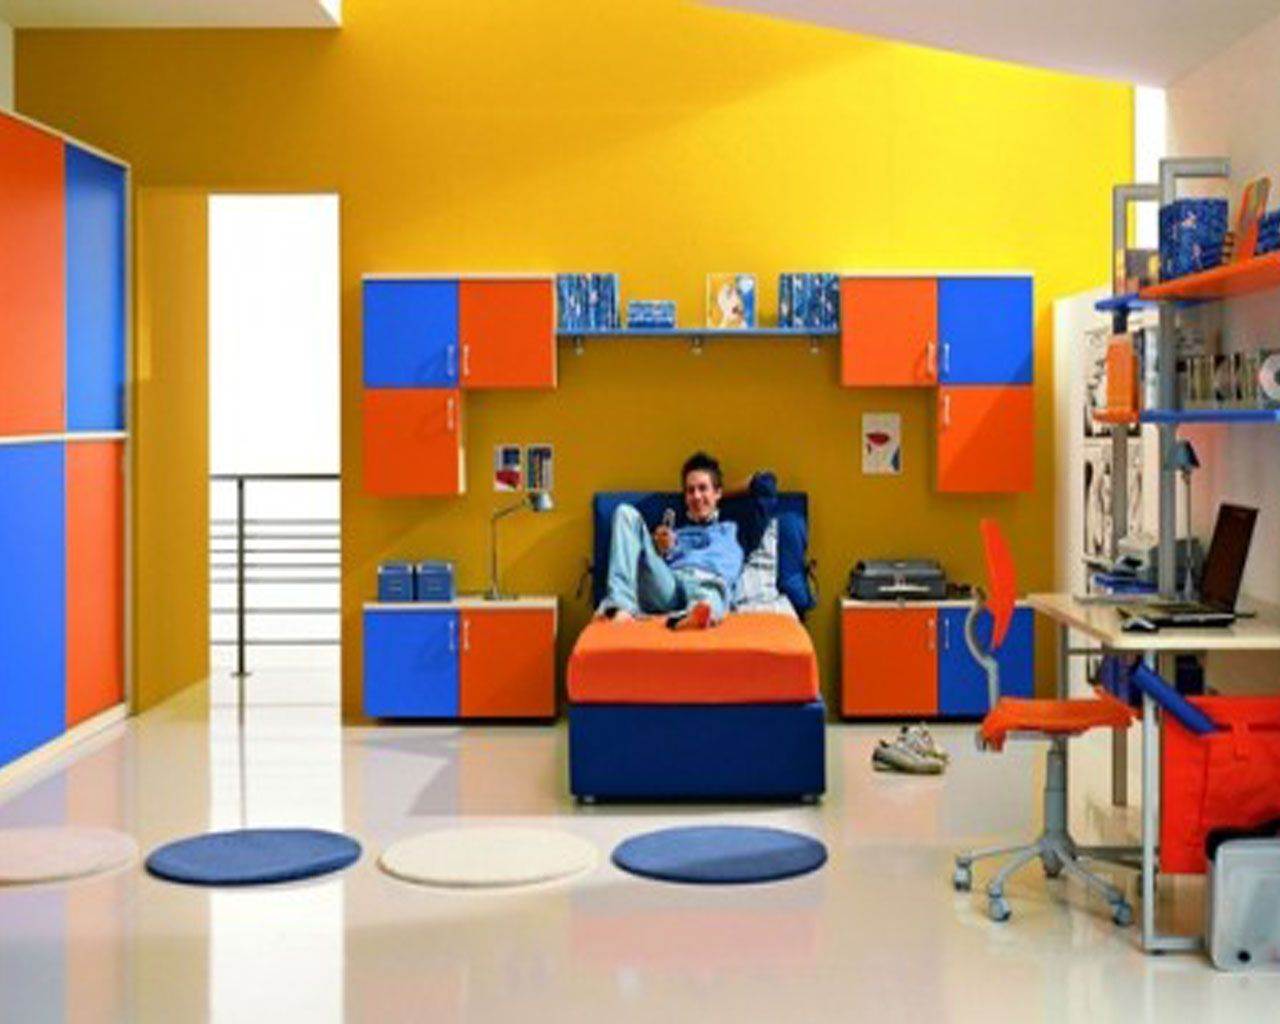 Bedrooms for boys paint colors - Boys Bedroom Idea With Yellow Wall Paint Color And Orange Blue Cabinets And